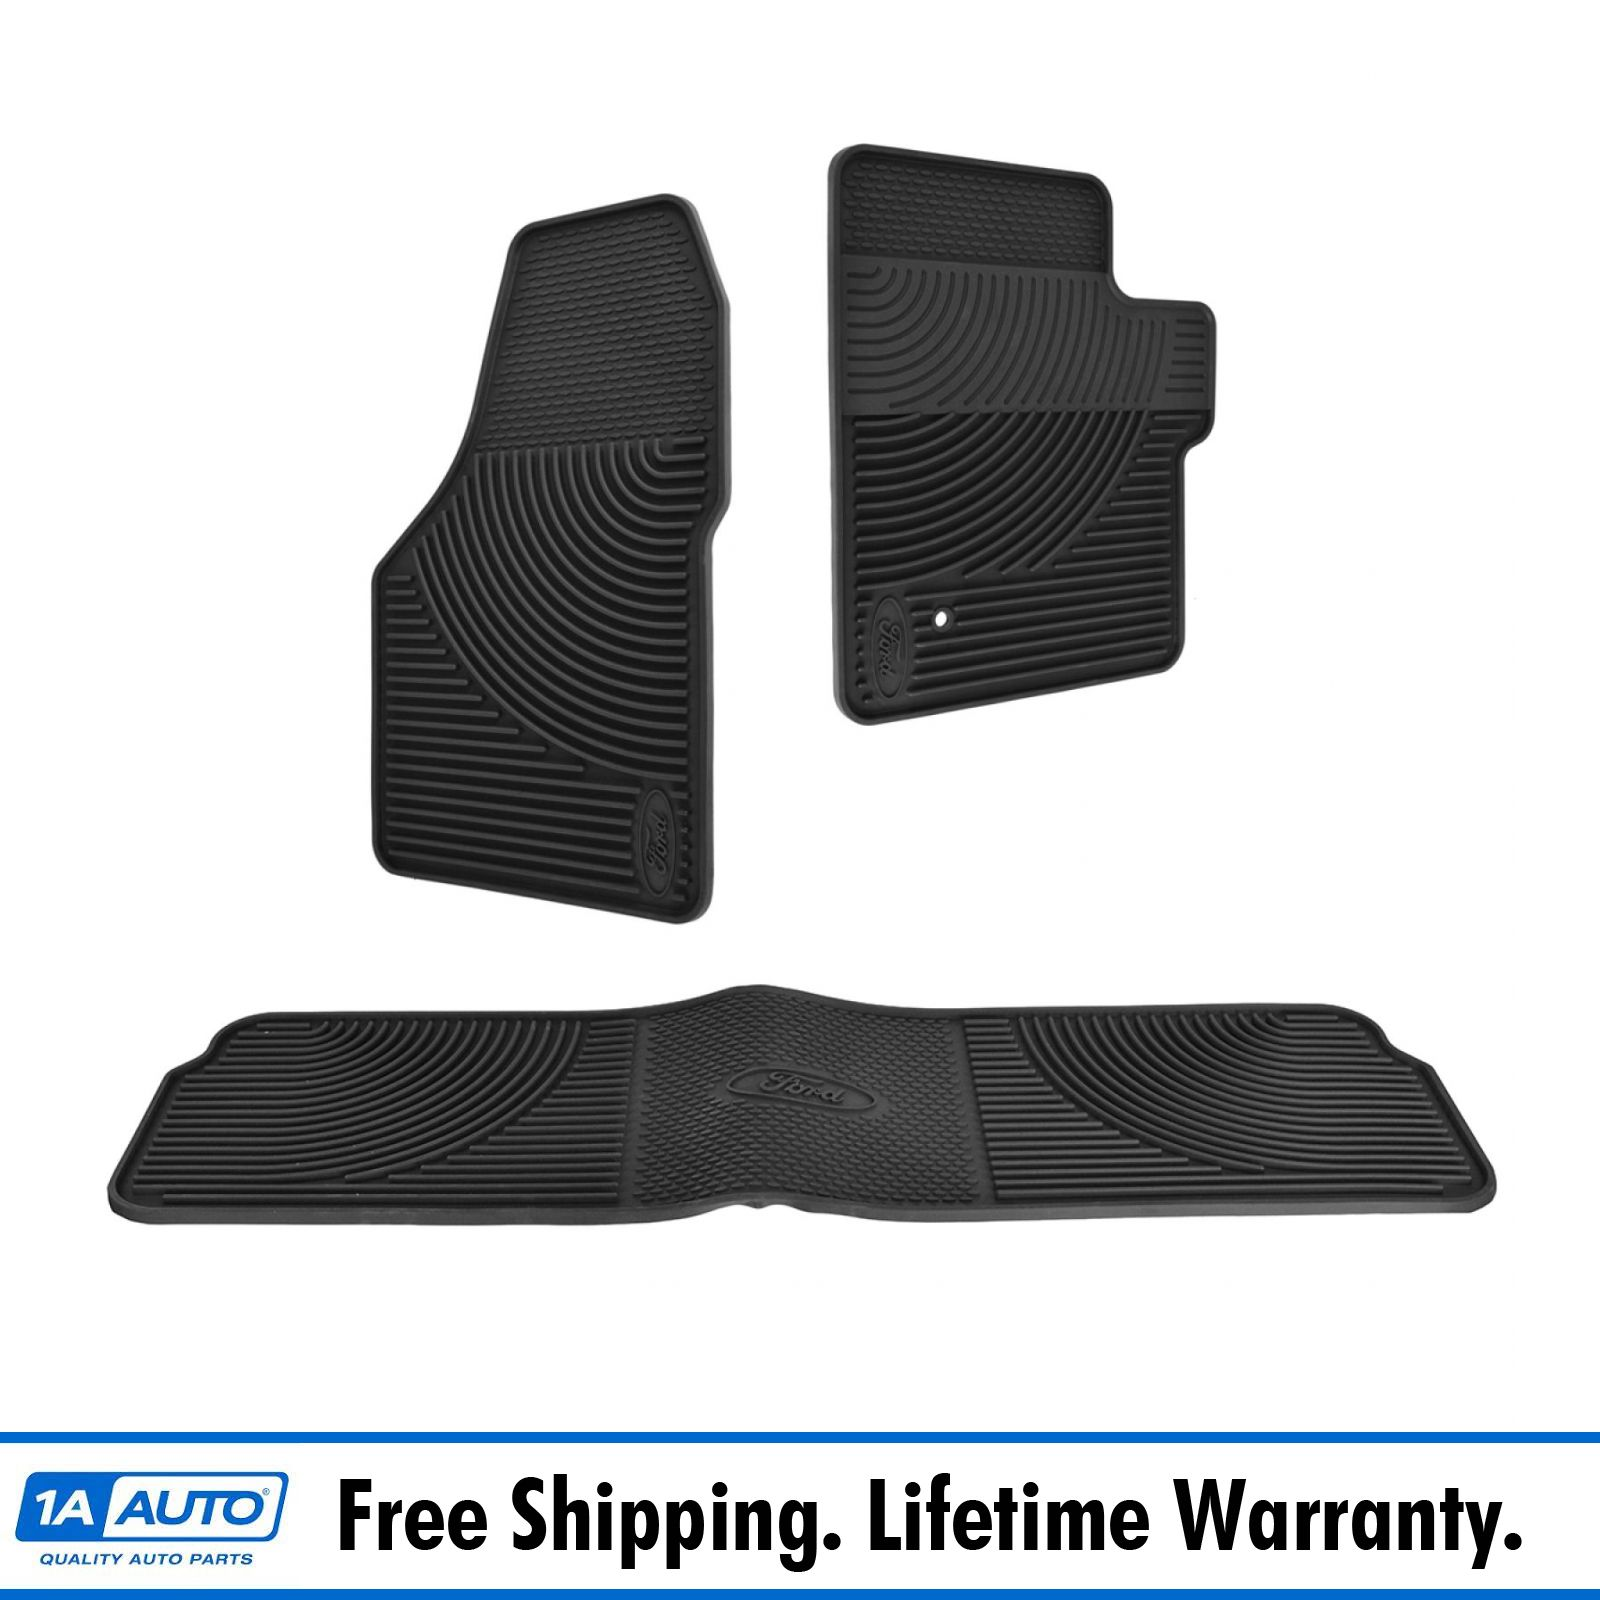 Ford F 350 Super Duty Carpet Replacement 99 07: OEM Floor Mat Black Rubber All Weather Set For 05-10 Ford